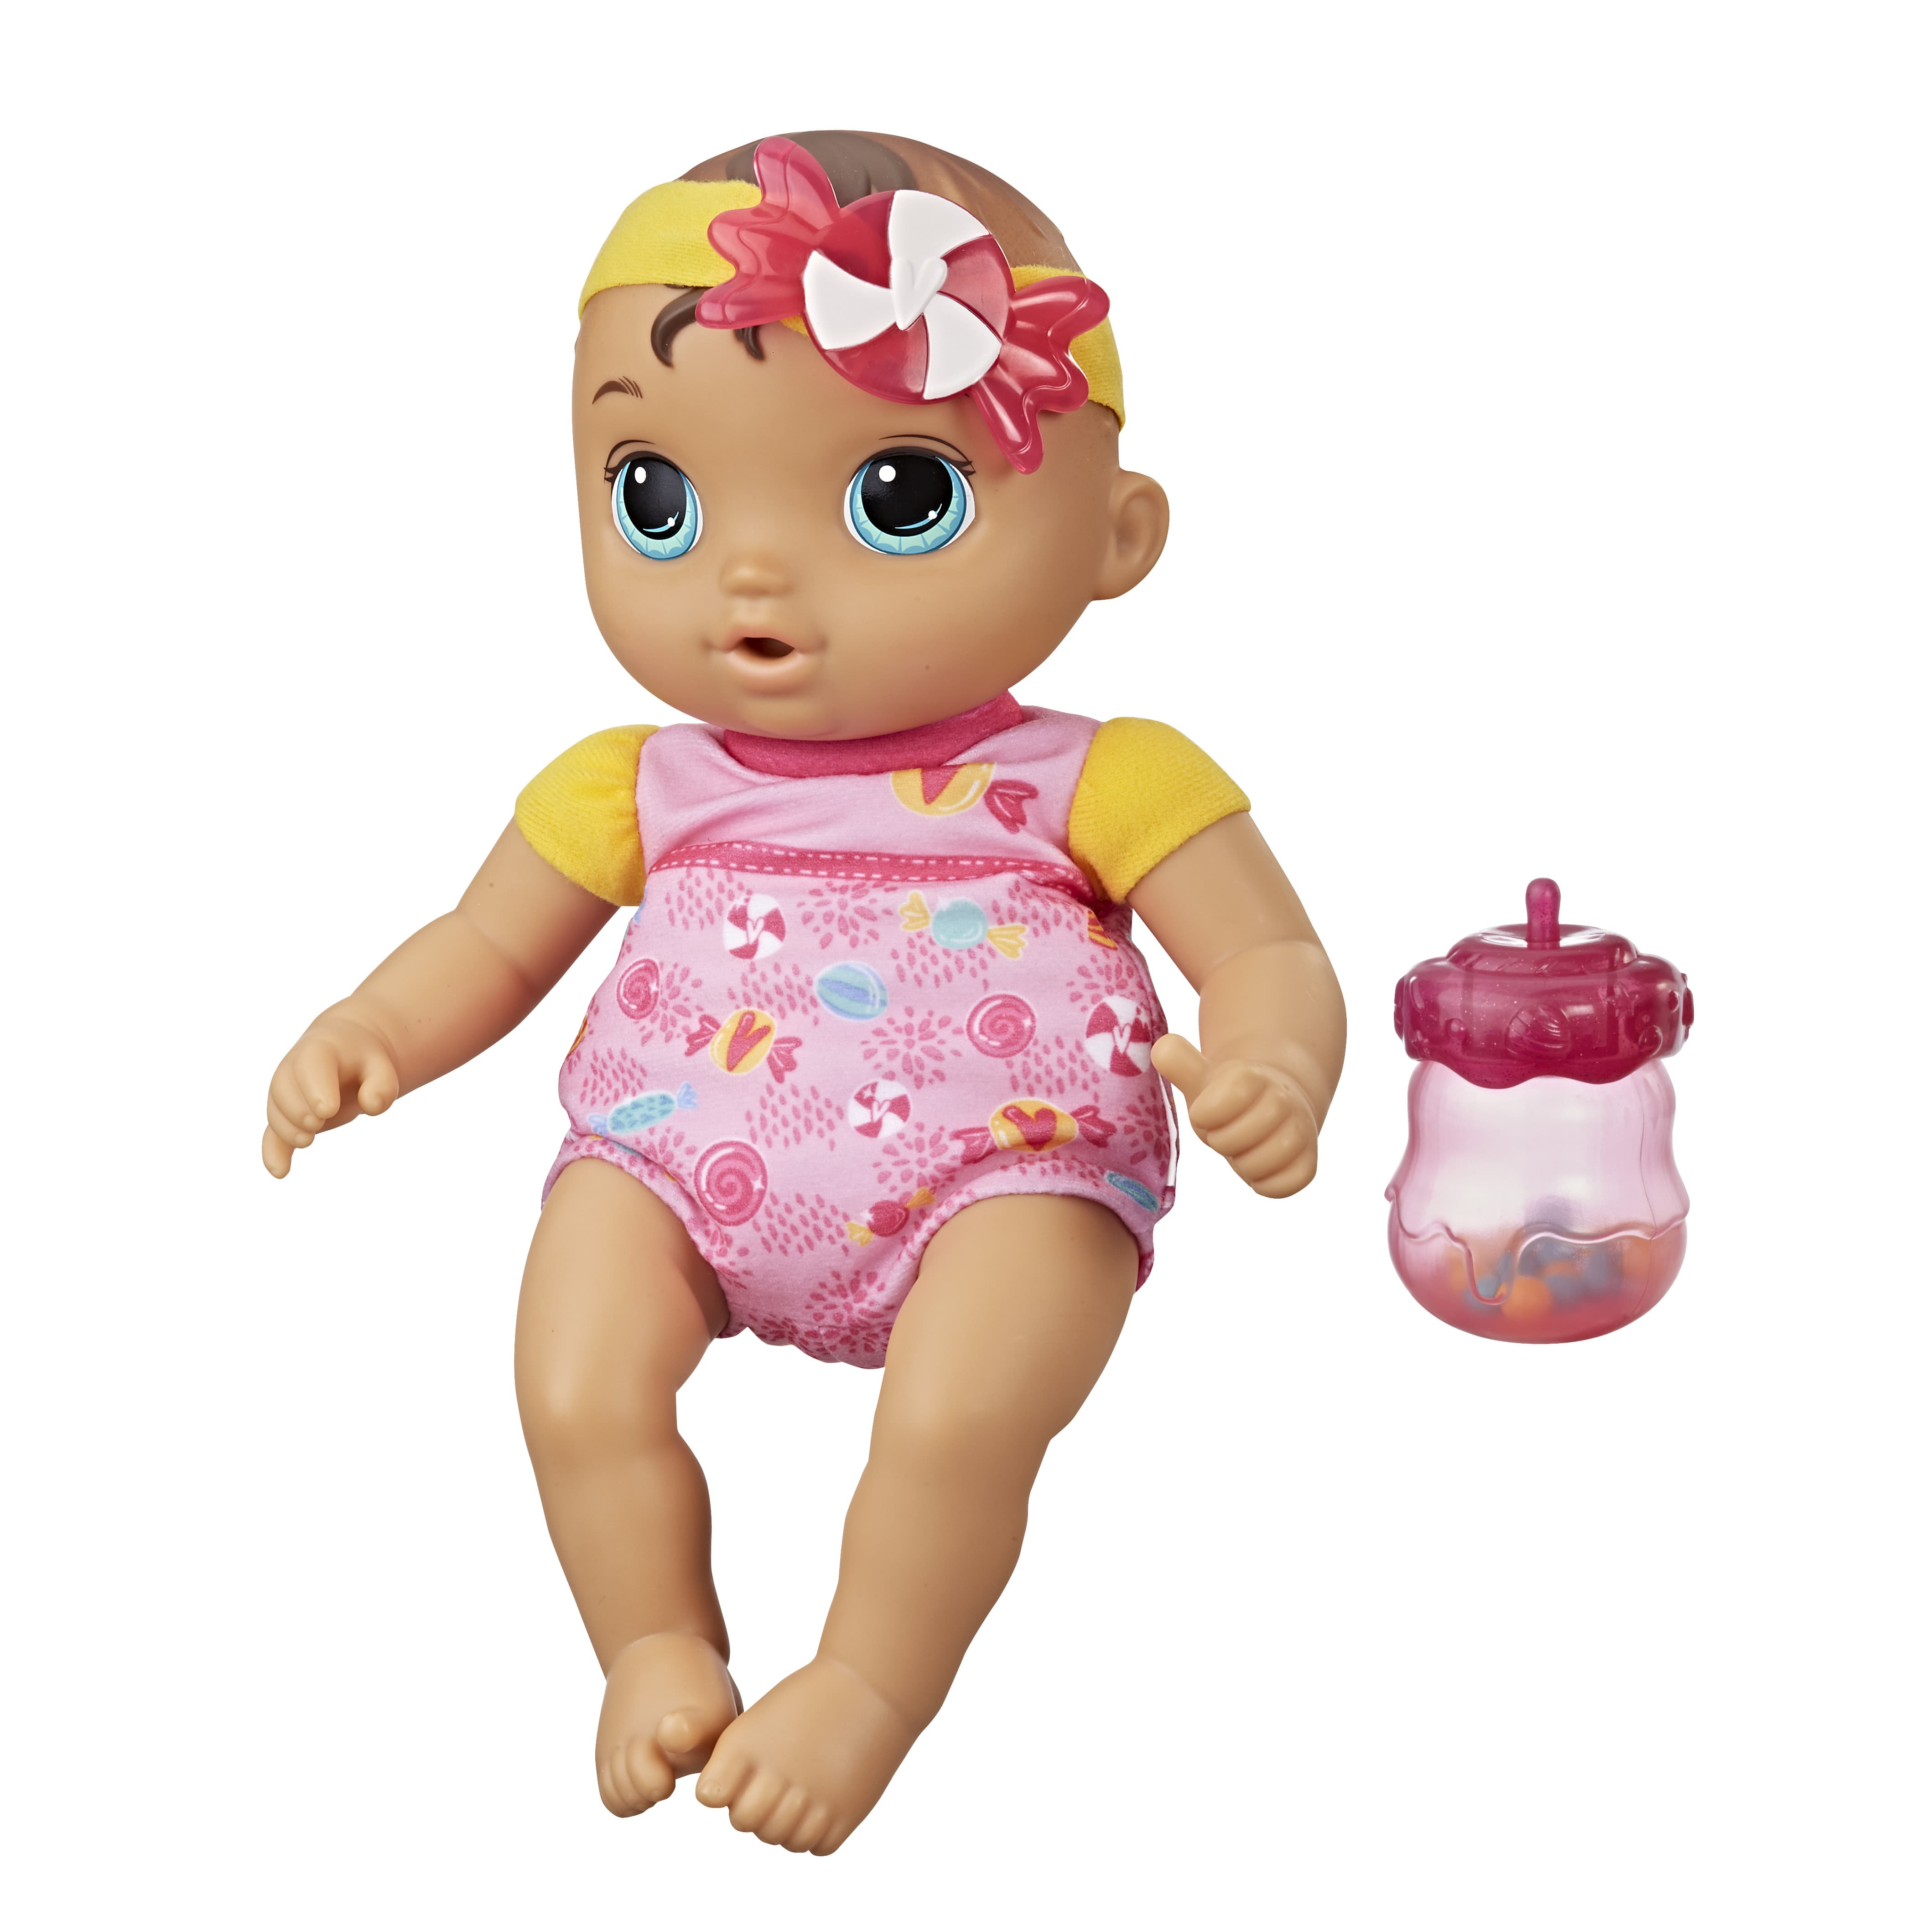 E7599 BABY ALIVE HAPPY SWEET N SNUGGLY